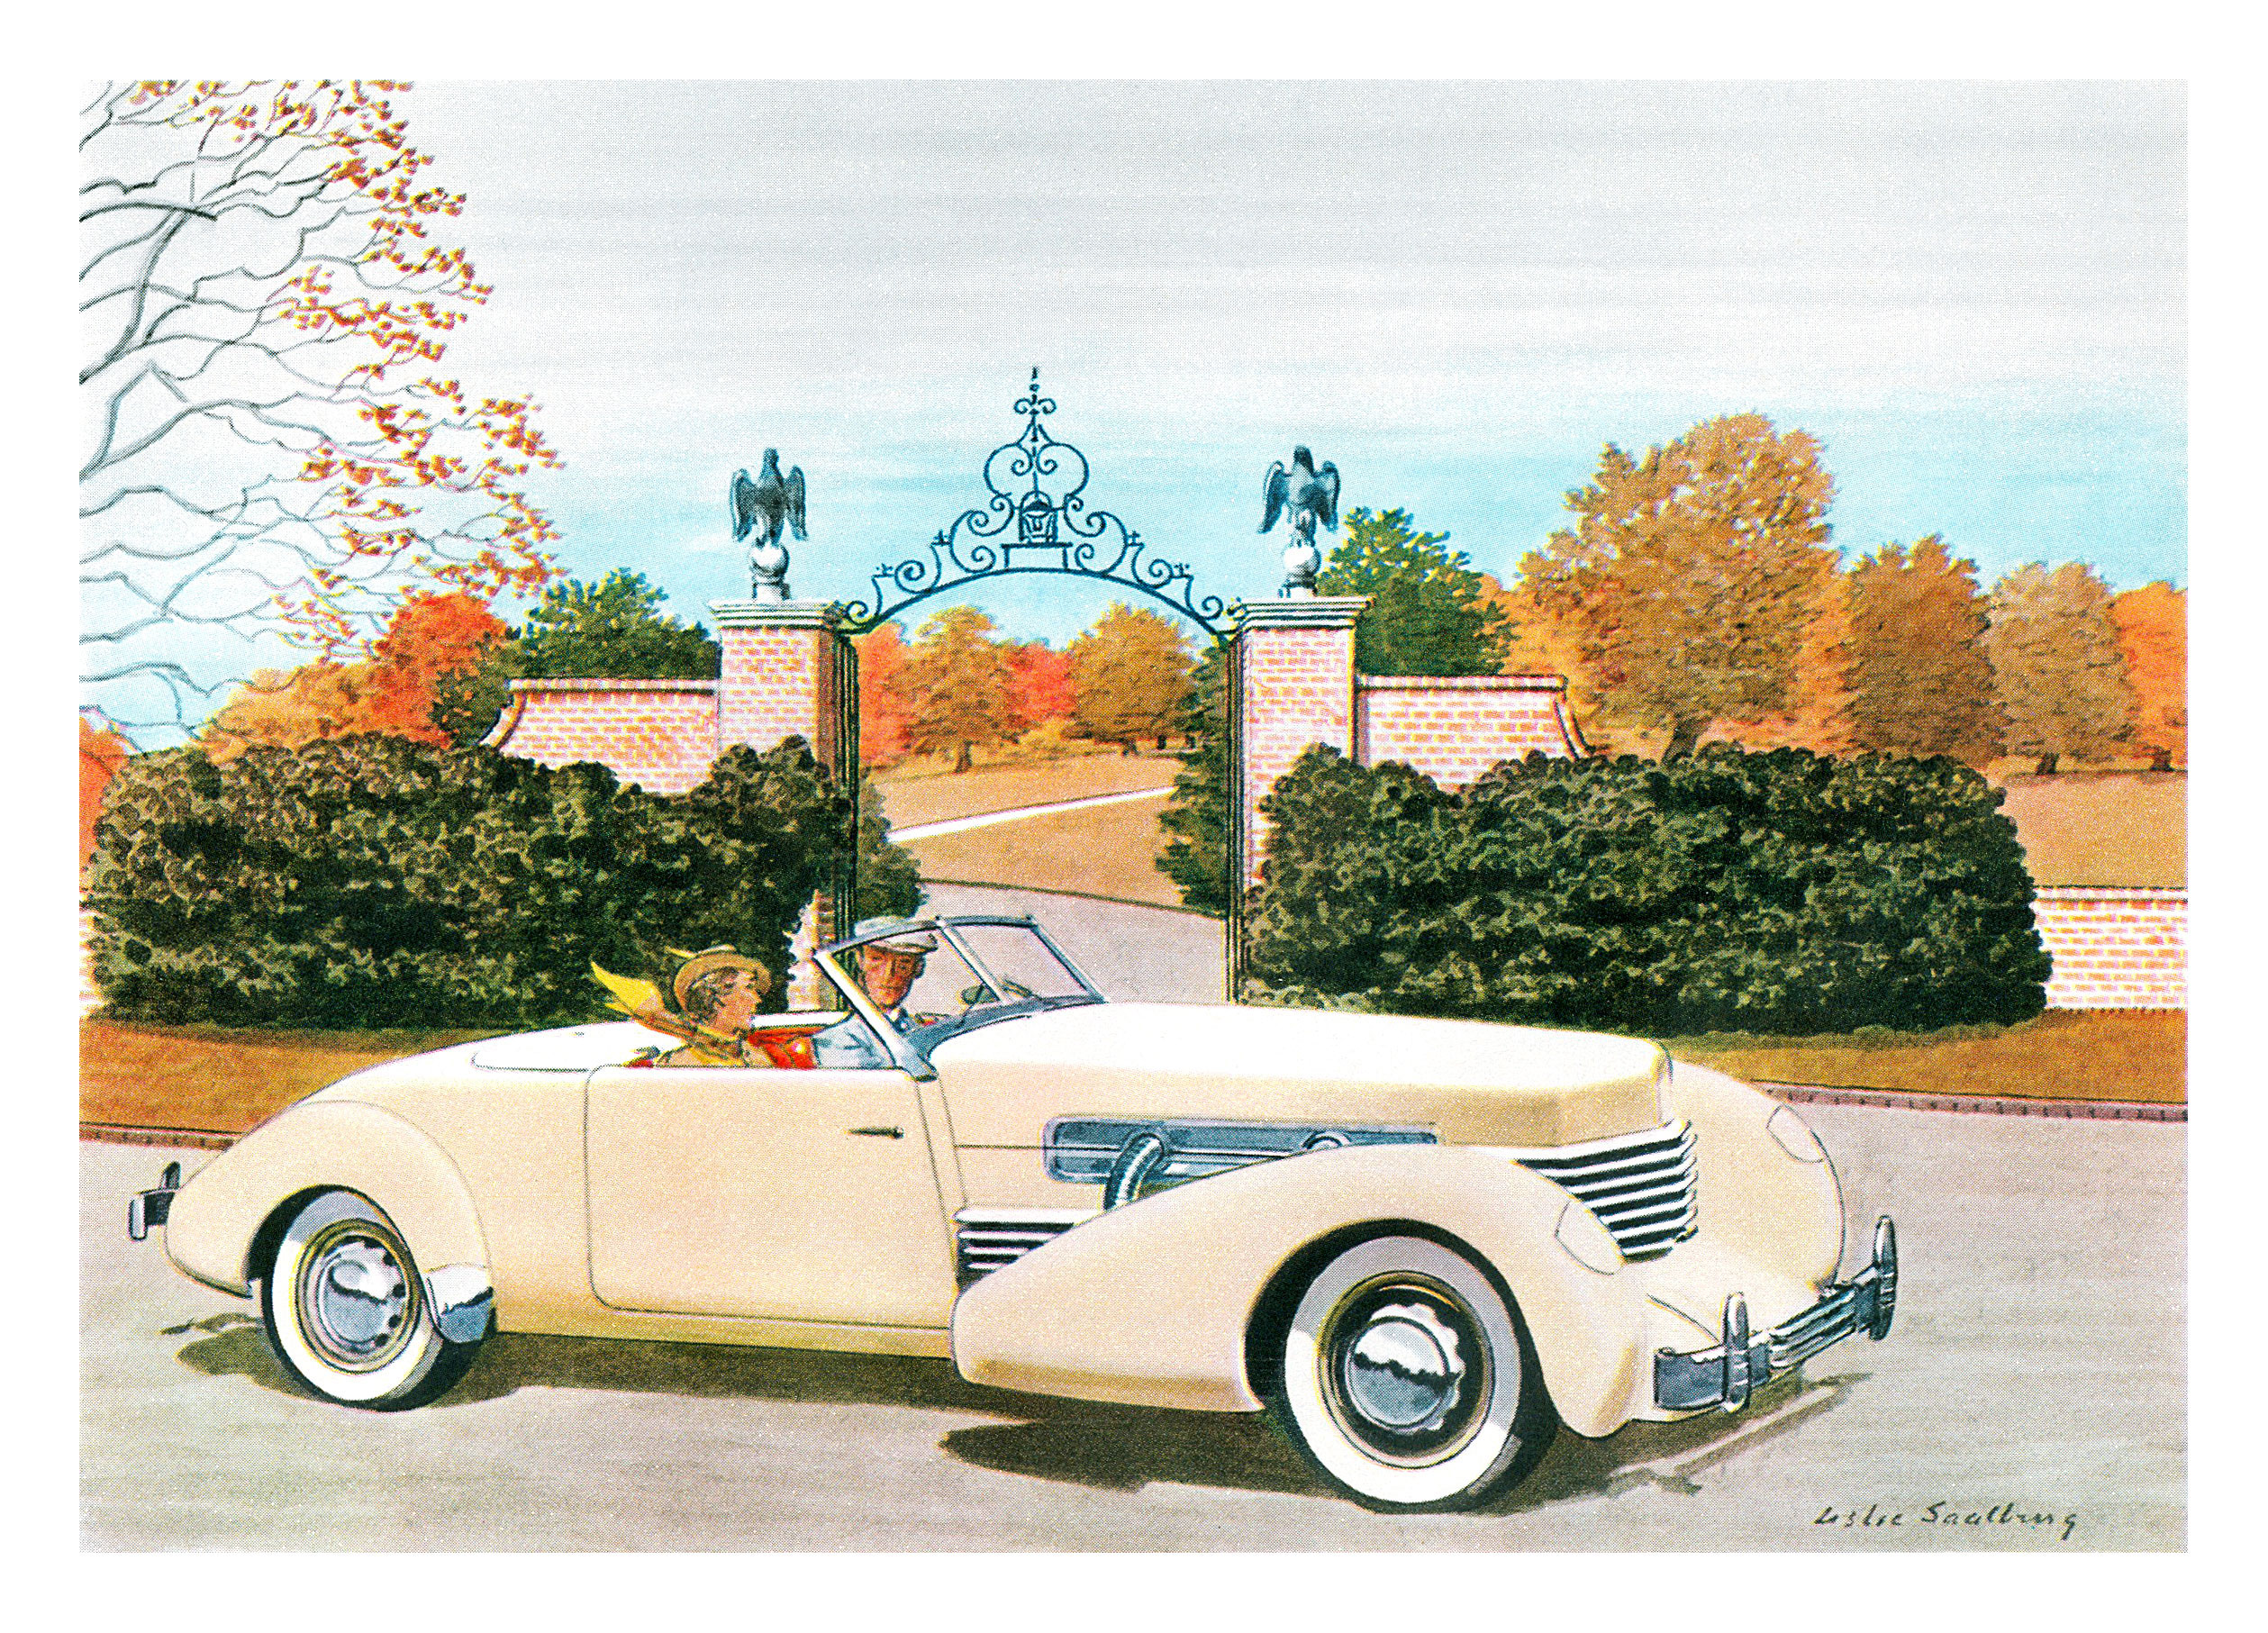 1937 Cord 812 Convertible Coupe - Illustrated by Leslie Saalburg